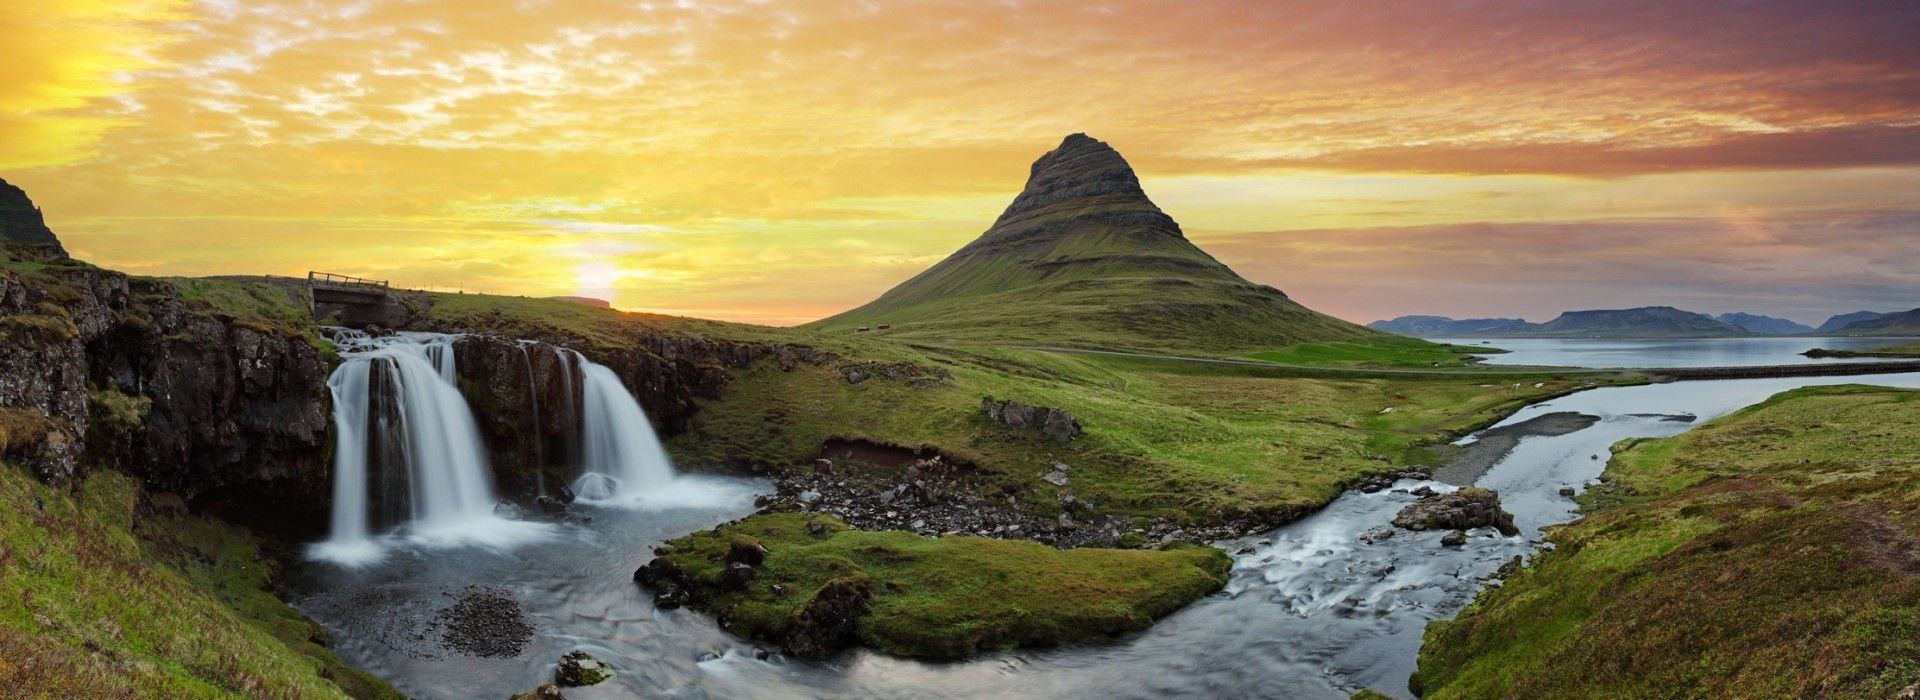 Geysers Tours in Iceland